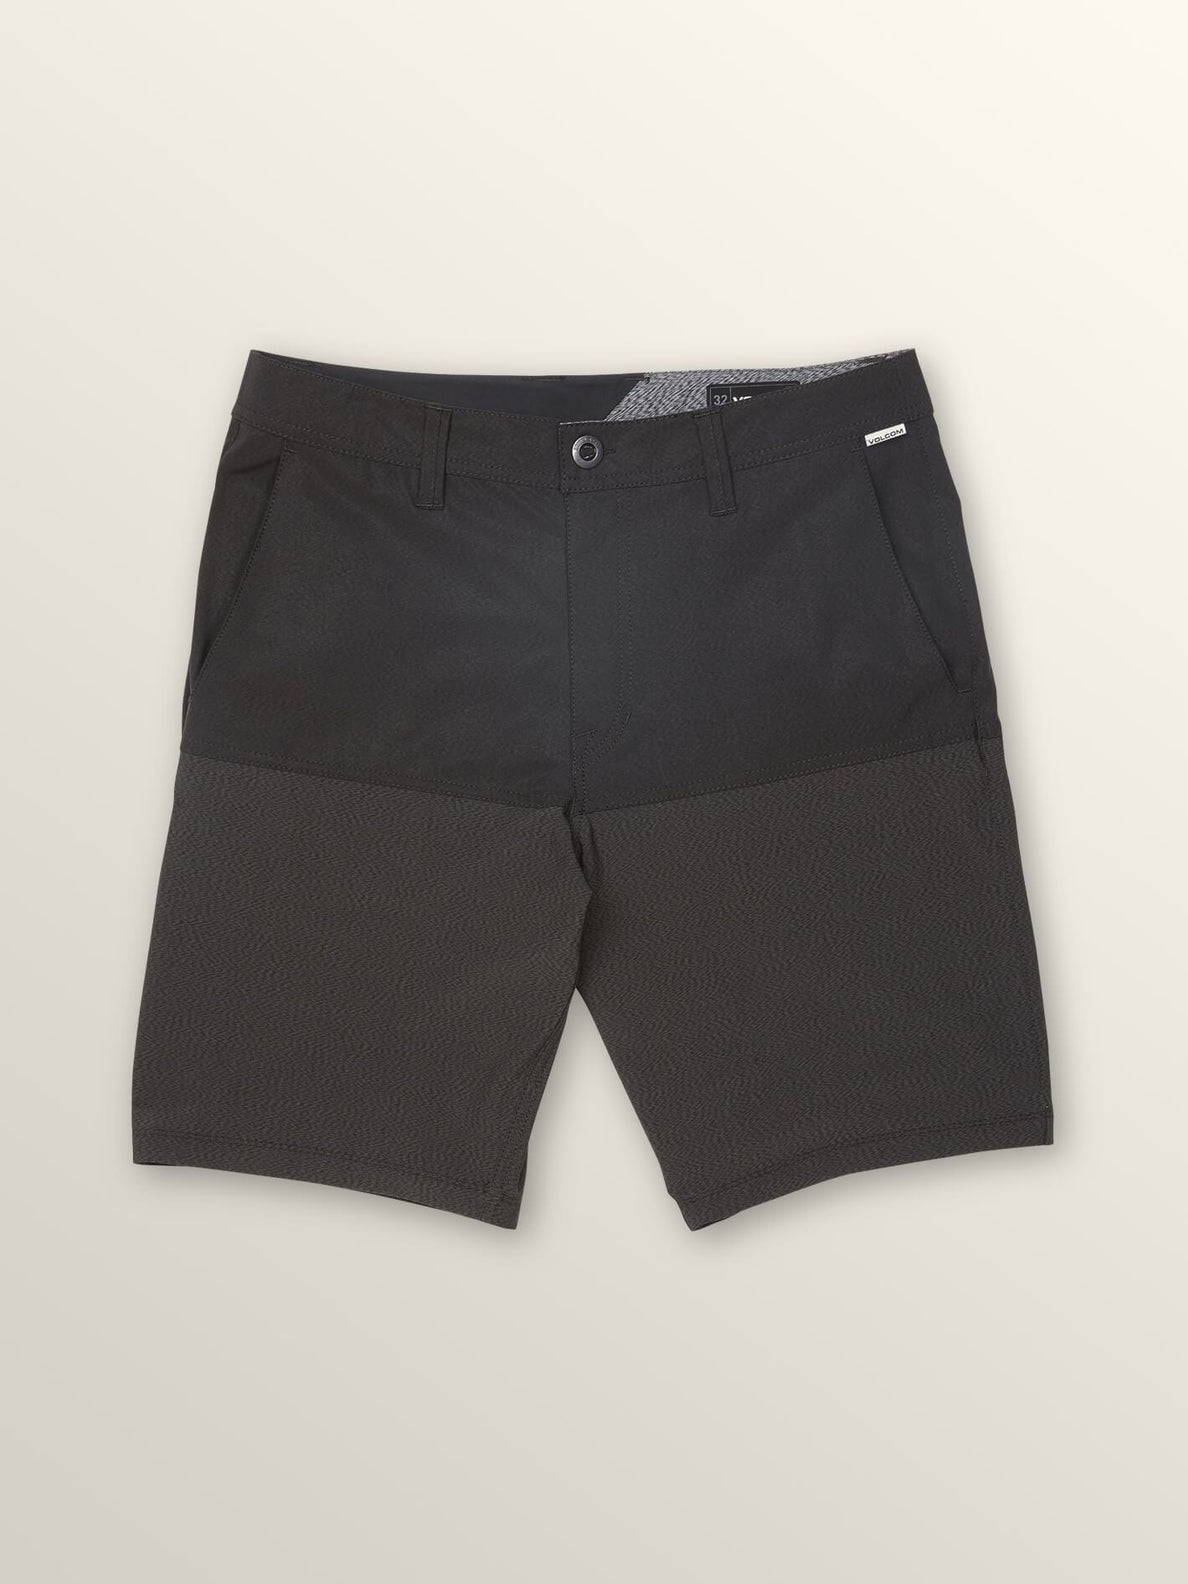 Surf 'N Turf Hybrid Block Hybrid Shorts In Black, Second Alternate View